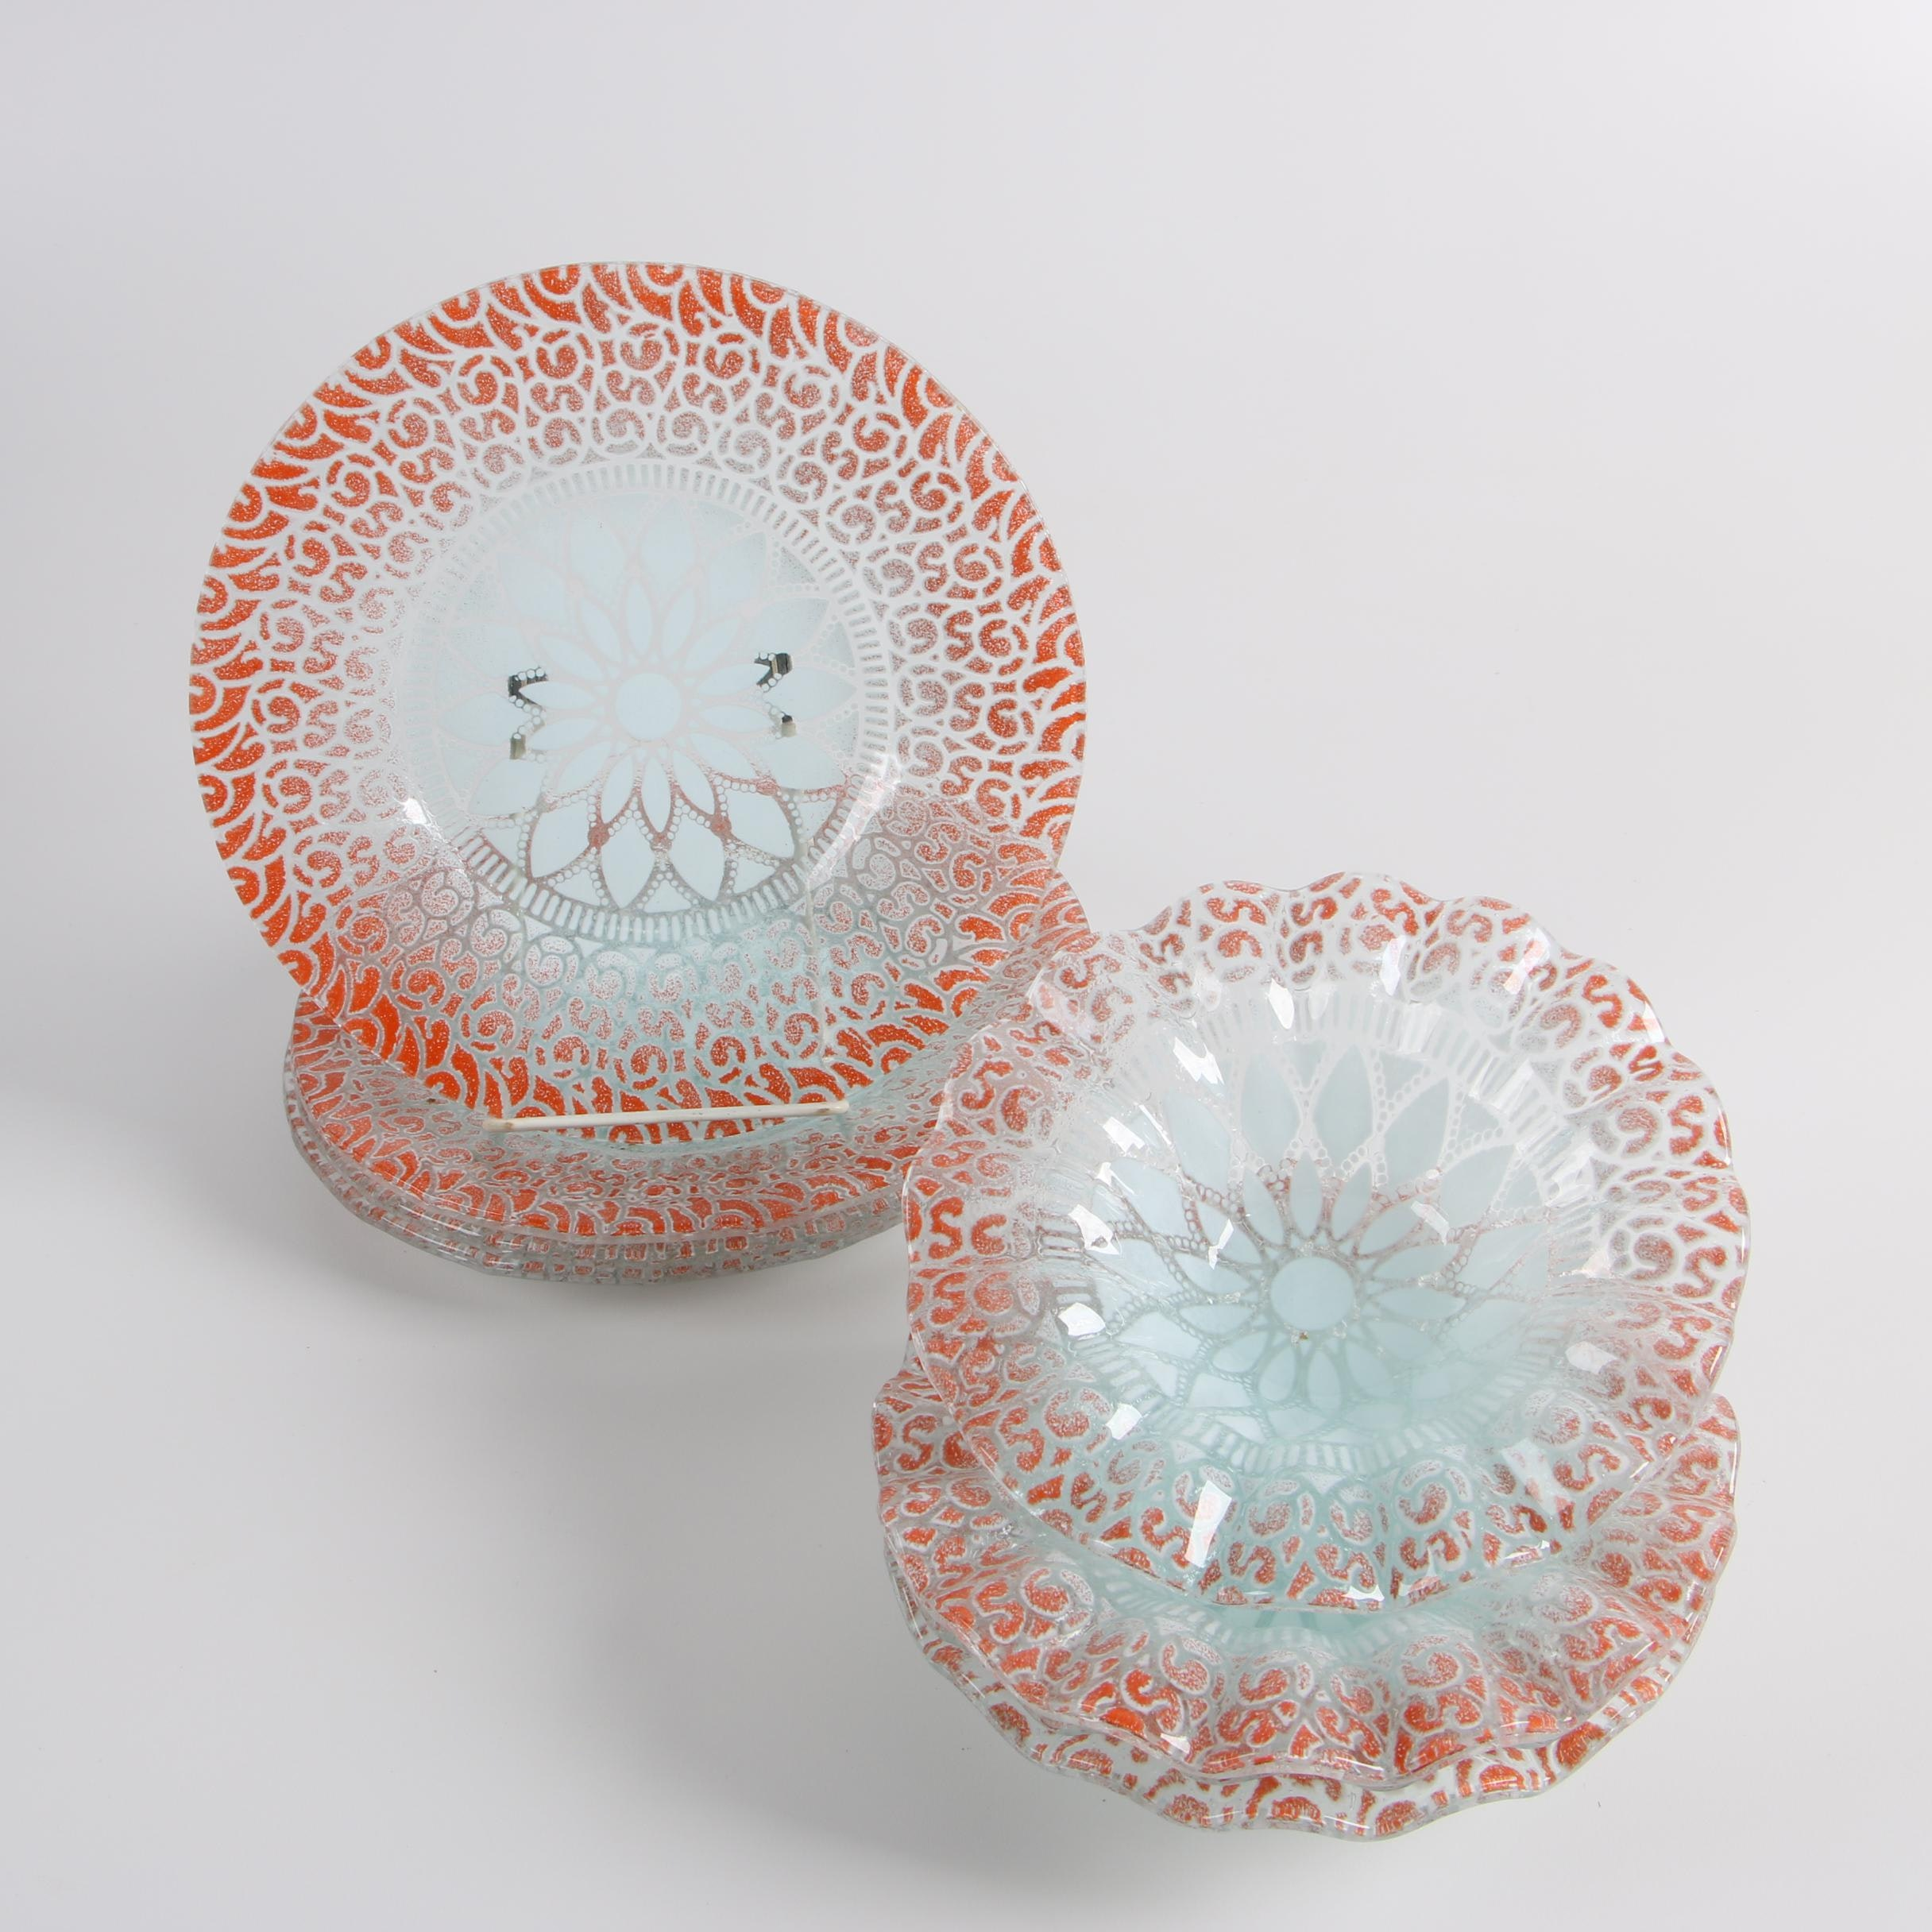 Italian Blown Glass Plates and Bowls